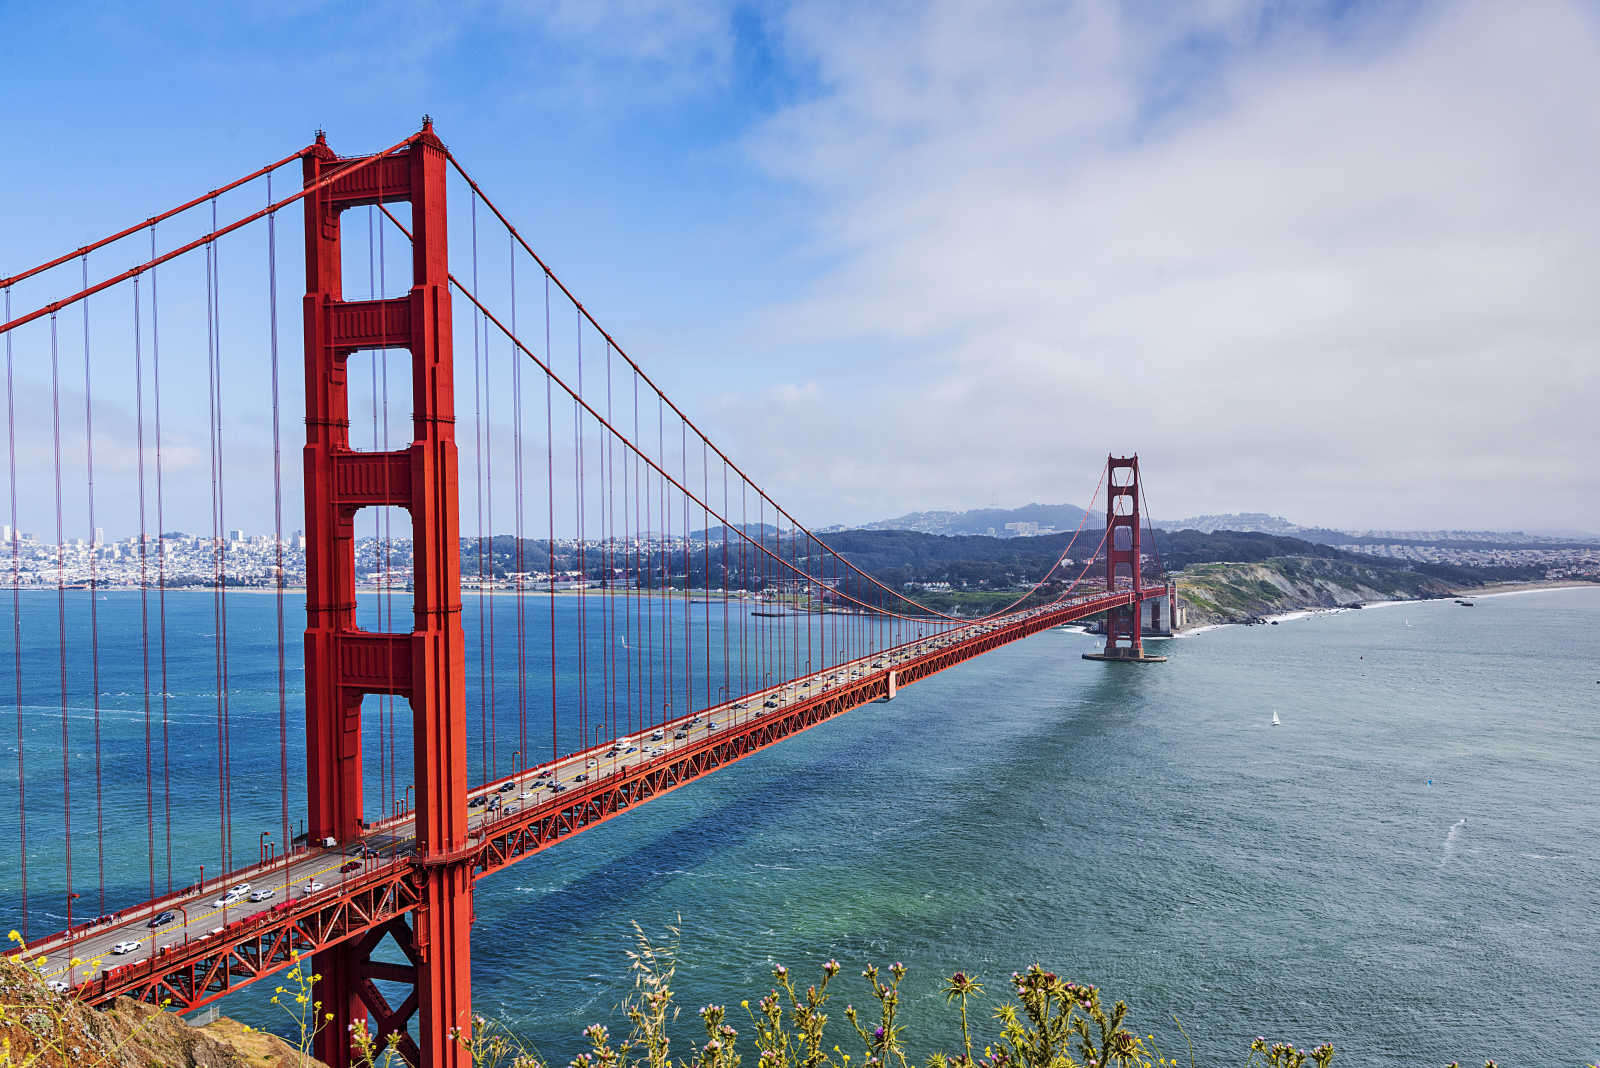 View of the landmark of San Francisco: The Golden Gate Bridge in the USA